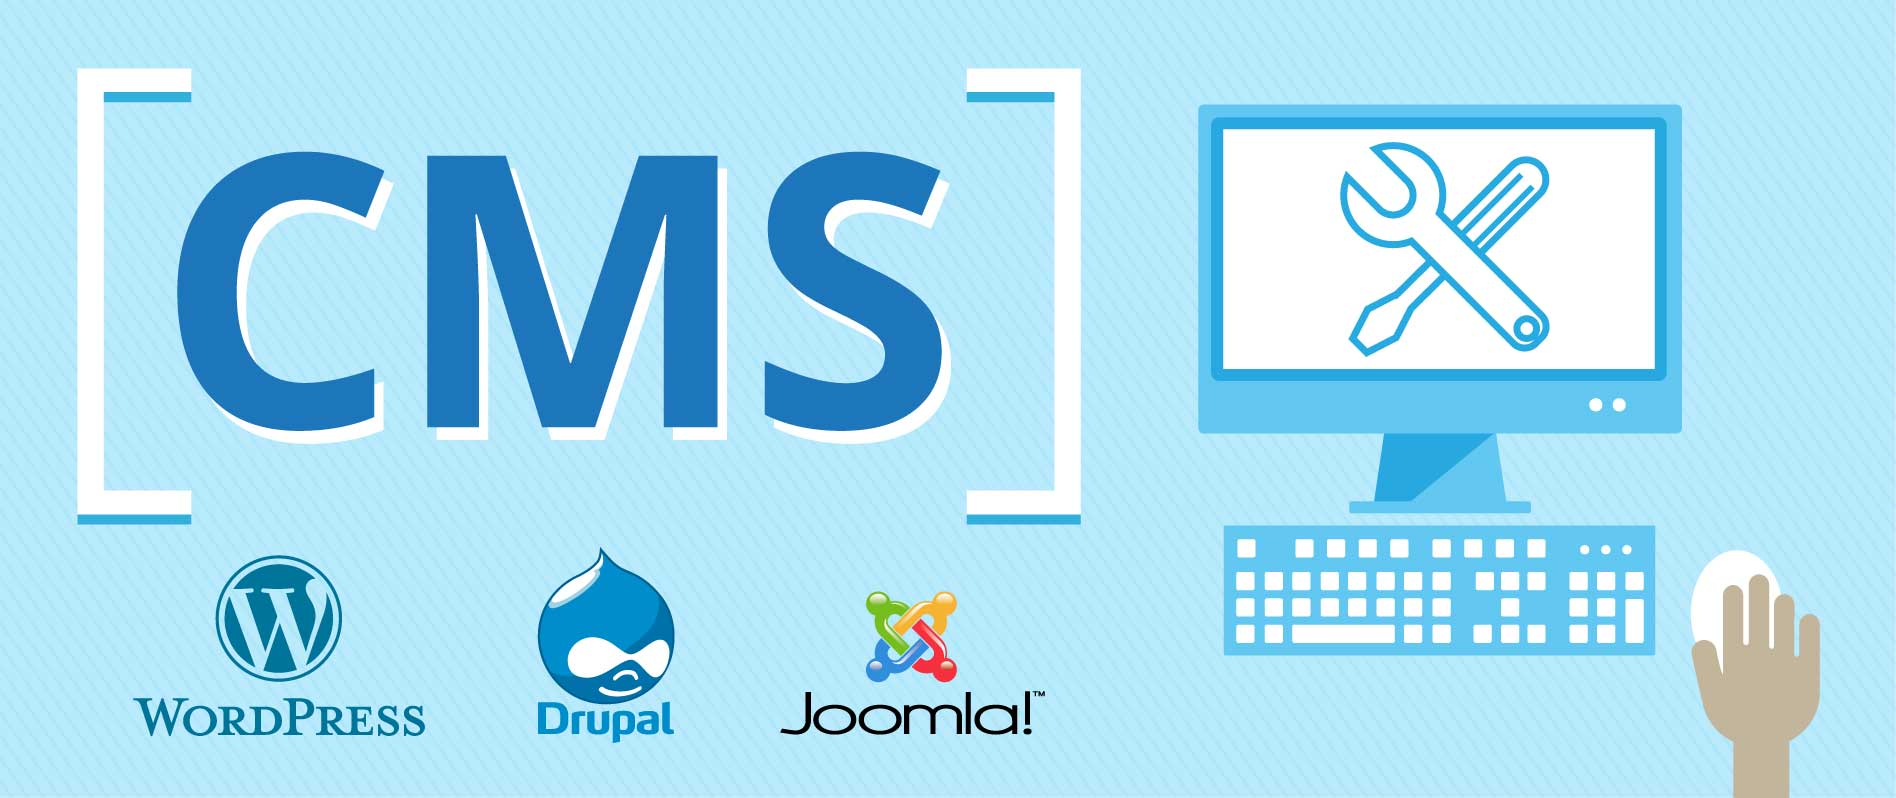 All you need is a customized CMS Website Development to work out wonders